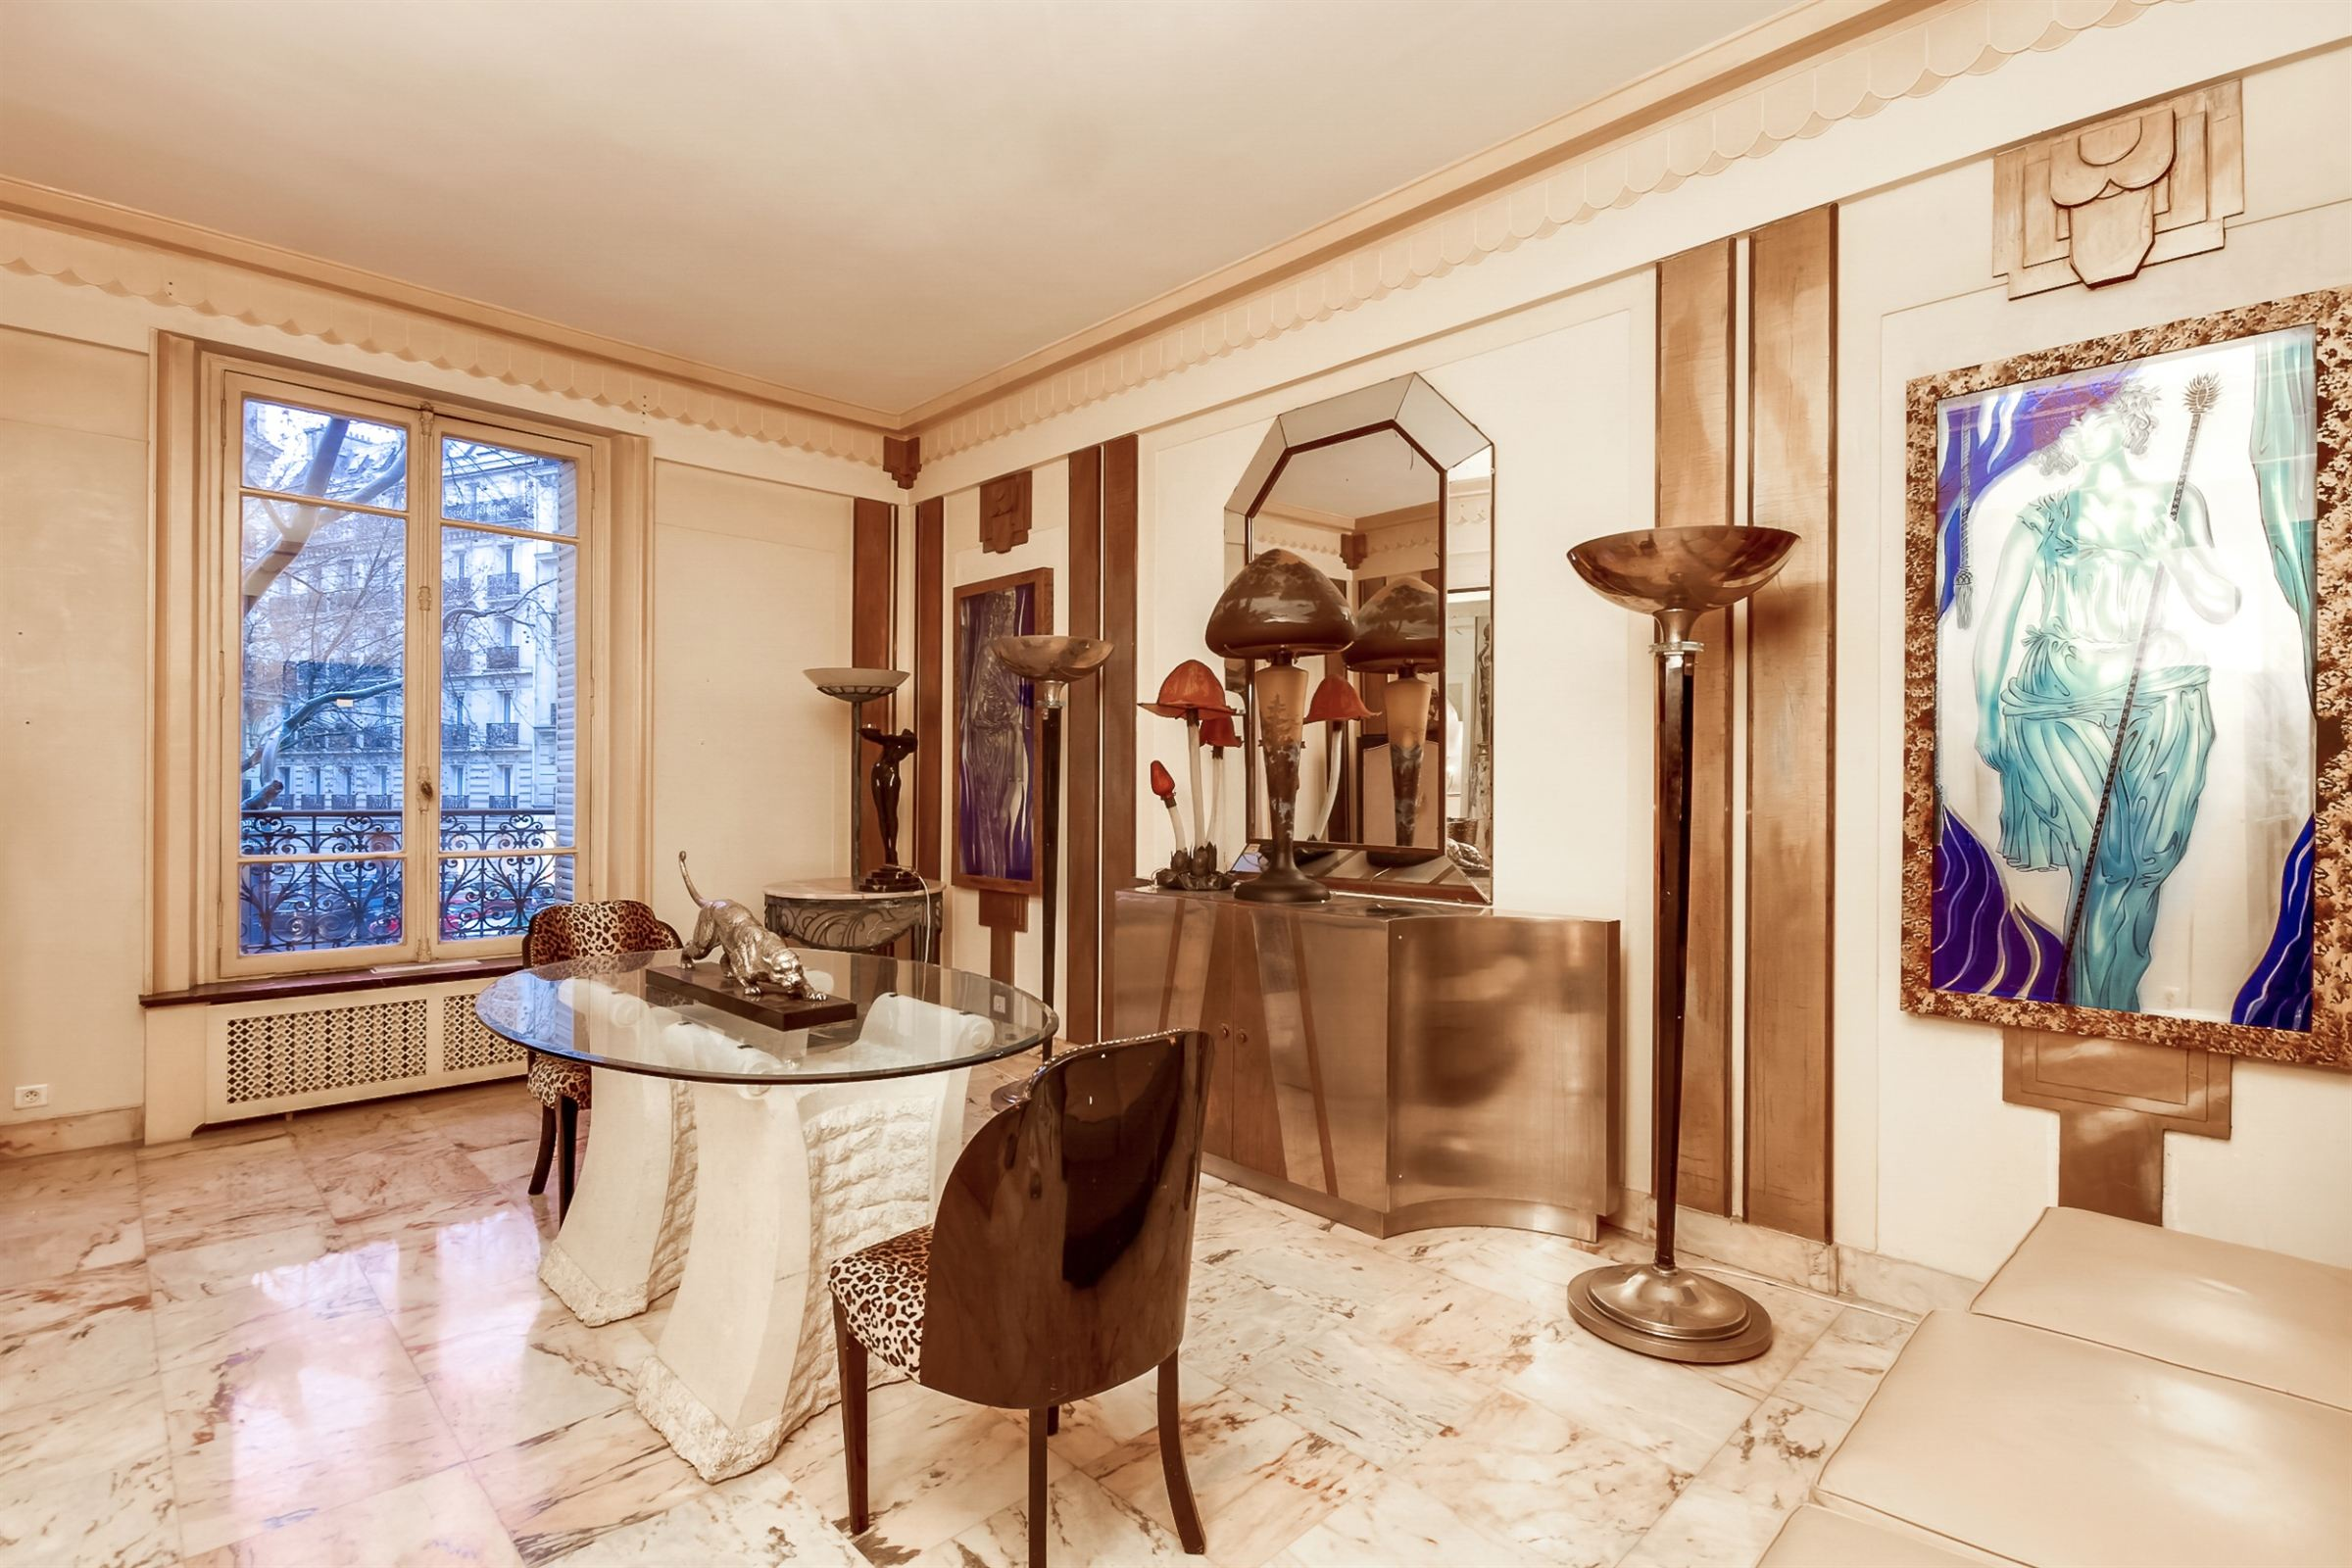 Property For Sale at Paris 8 - Monceau Park. 198 sq.m. apartment, beautiful volumes.